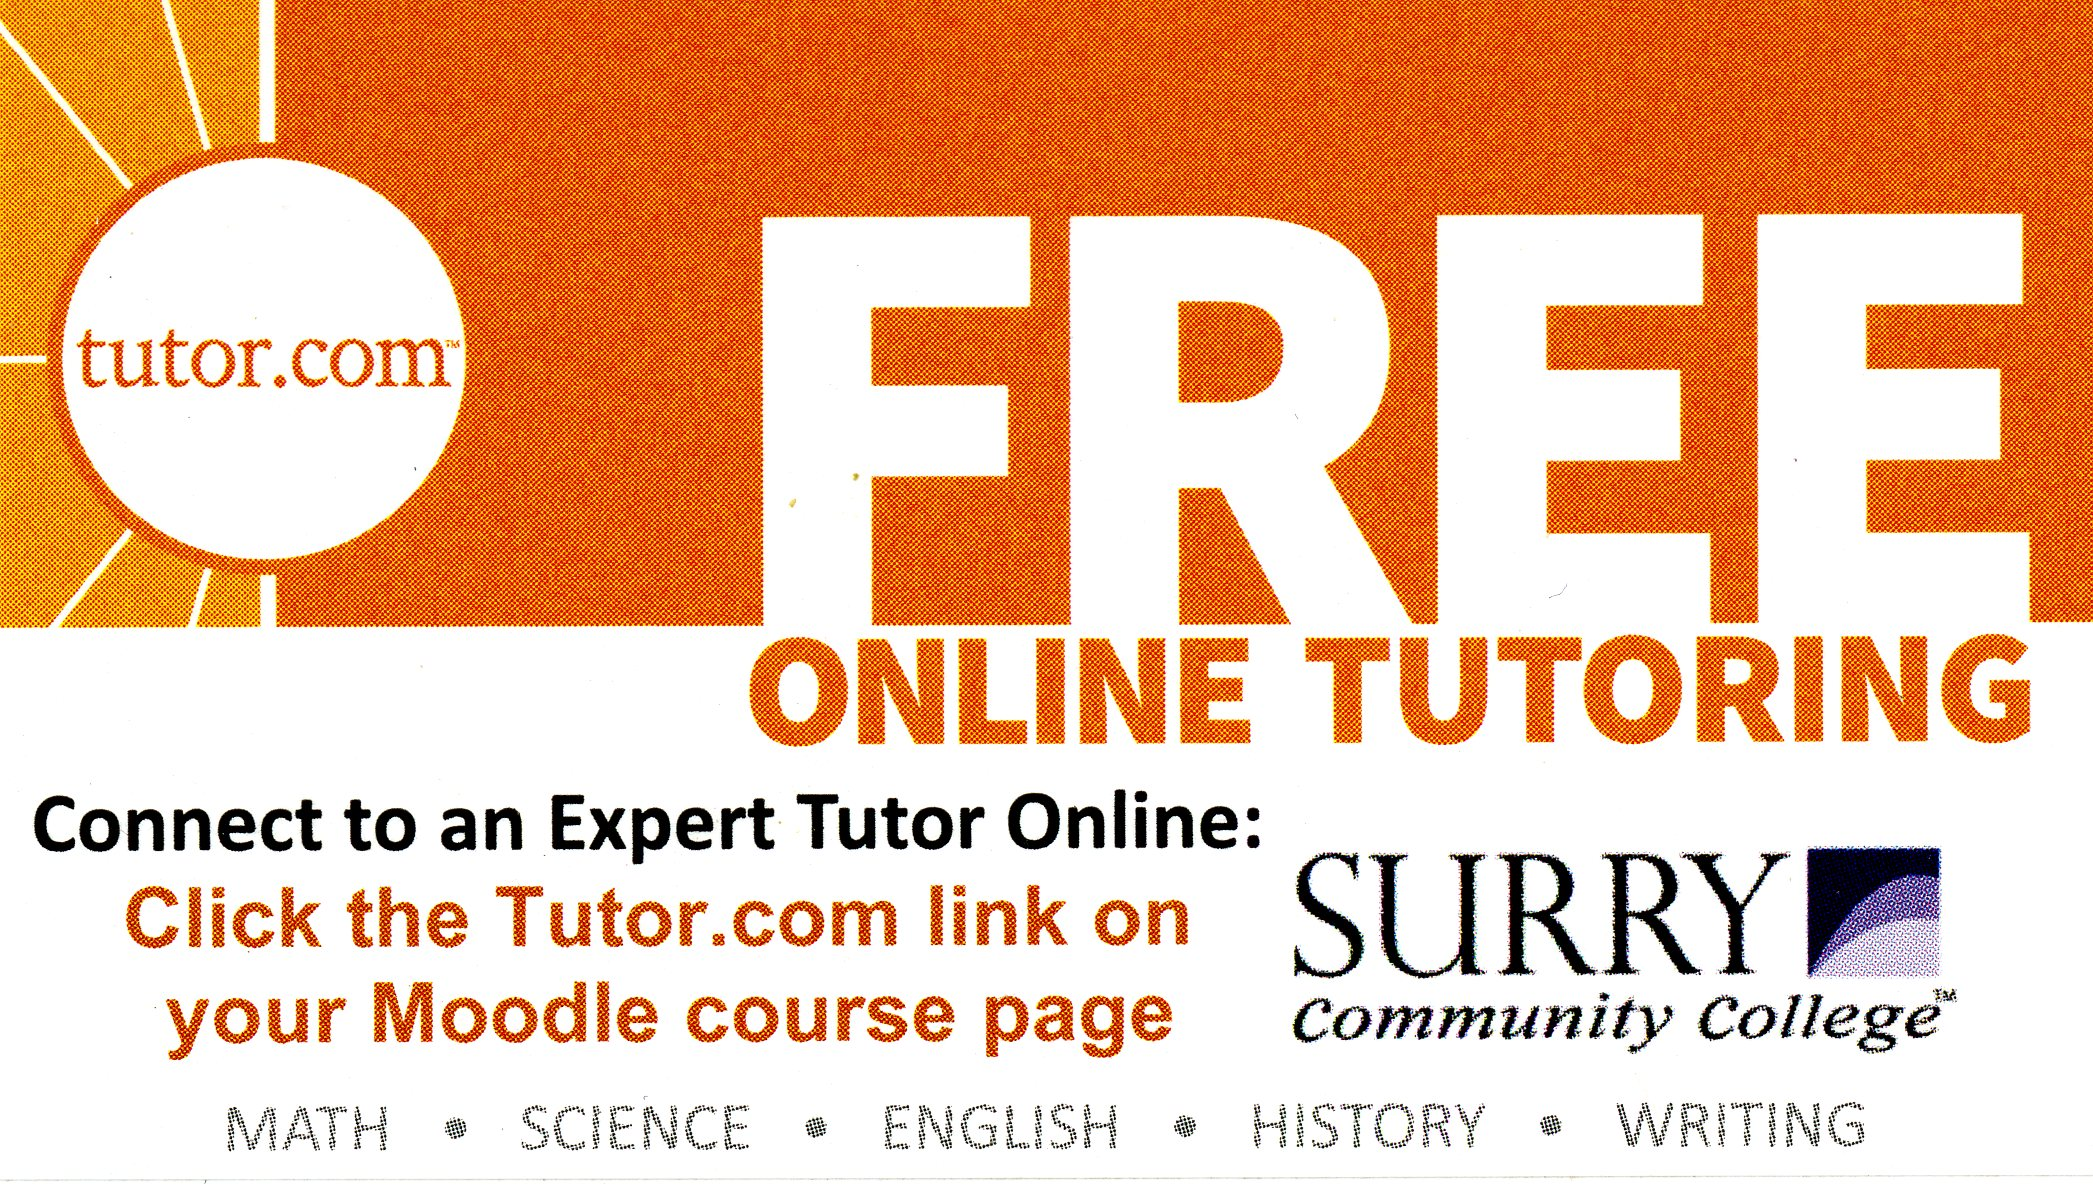 Online Tutoring - Academic Support Center - Library at Surry ...